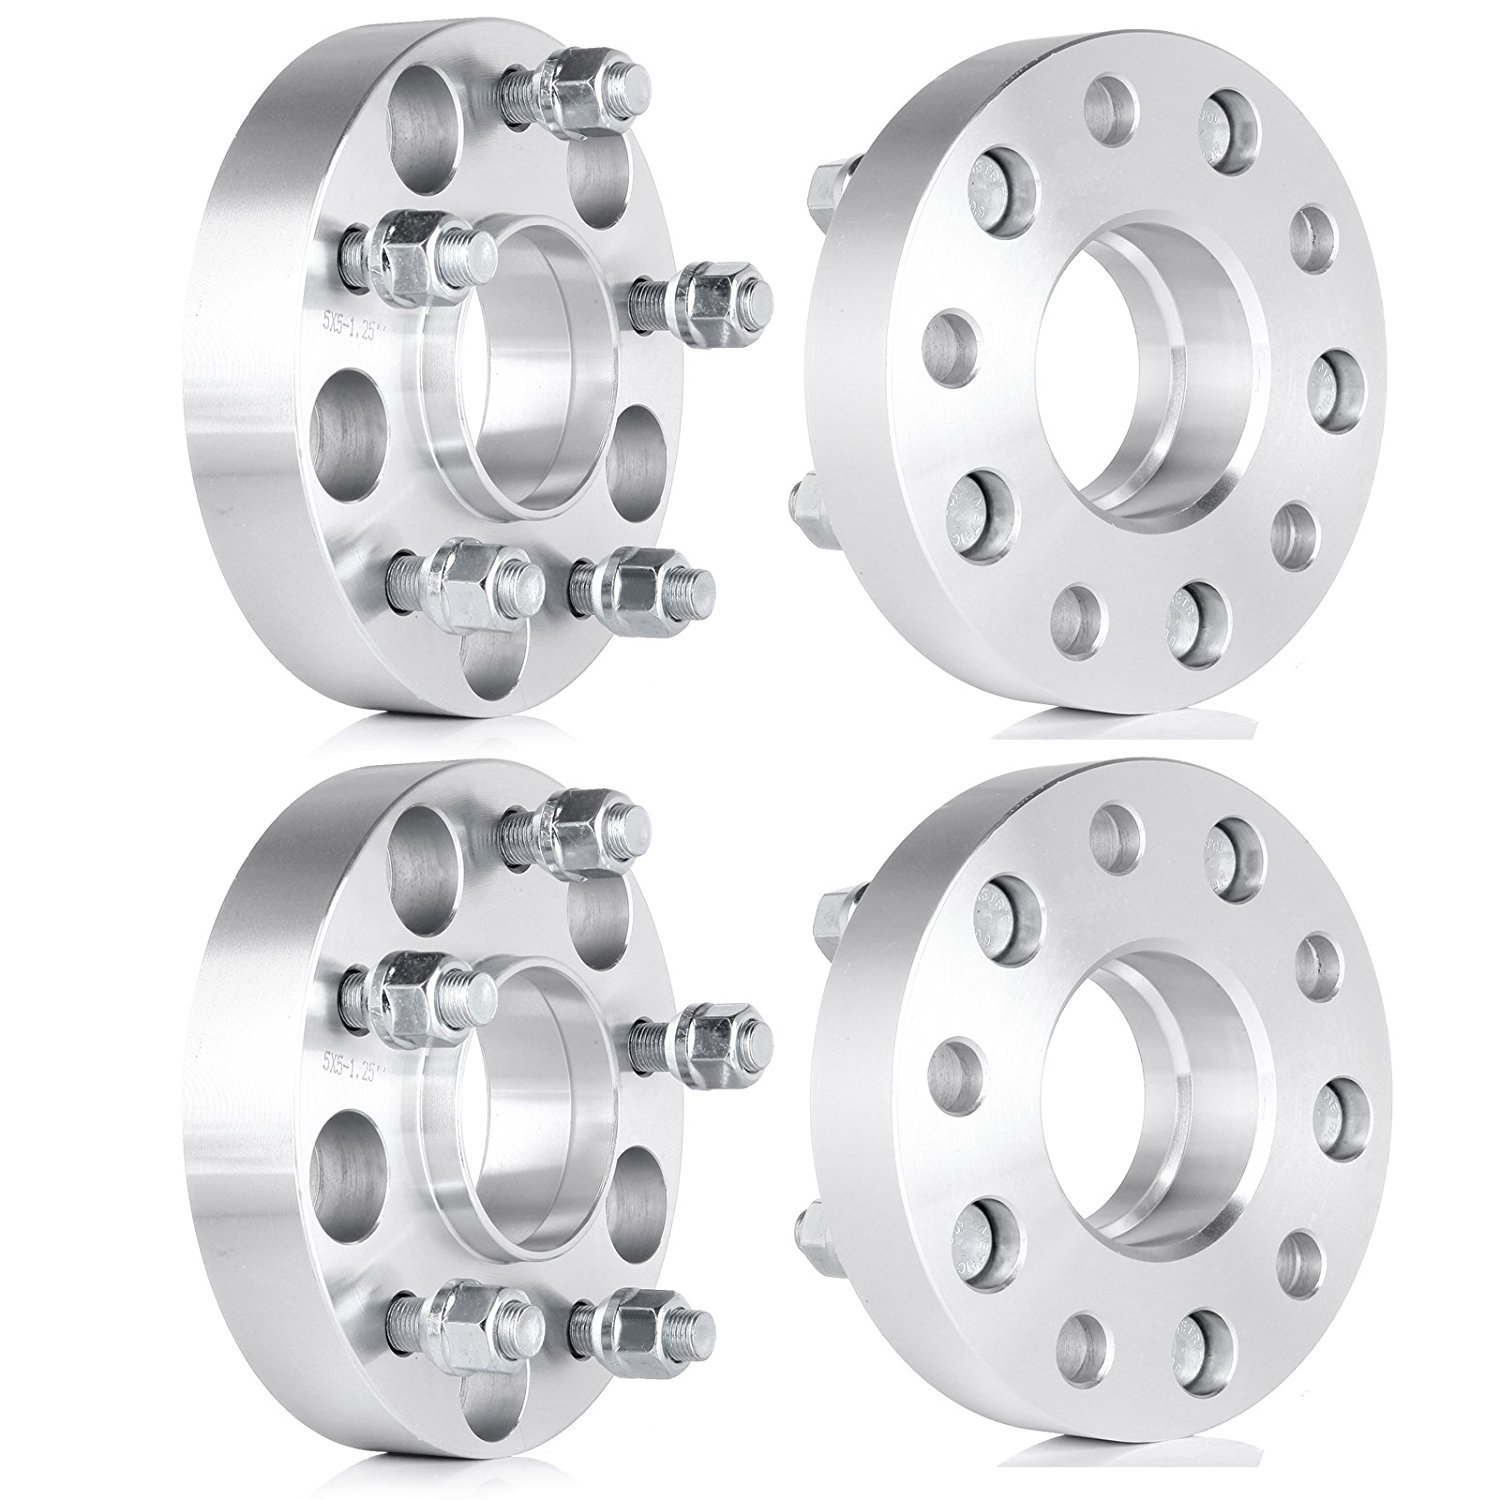 ECCPP 5 Lug Hub Centric Wheel Spacers 1.25 inch 5x4.5 to 5x4.5 5x114.3 to 5x114.3 70.5 Fit for Ford Mustang Edge Crown Victoria 1//2 Studs 4X